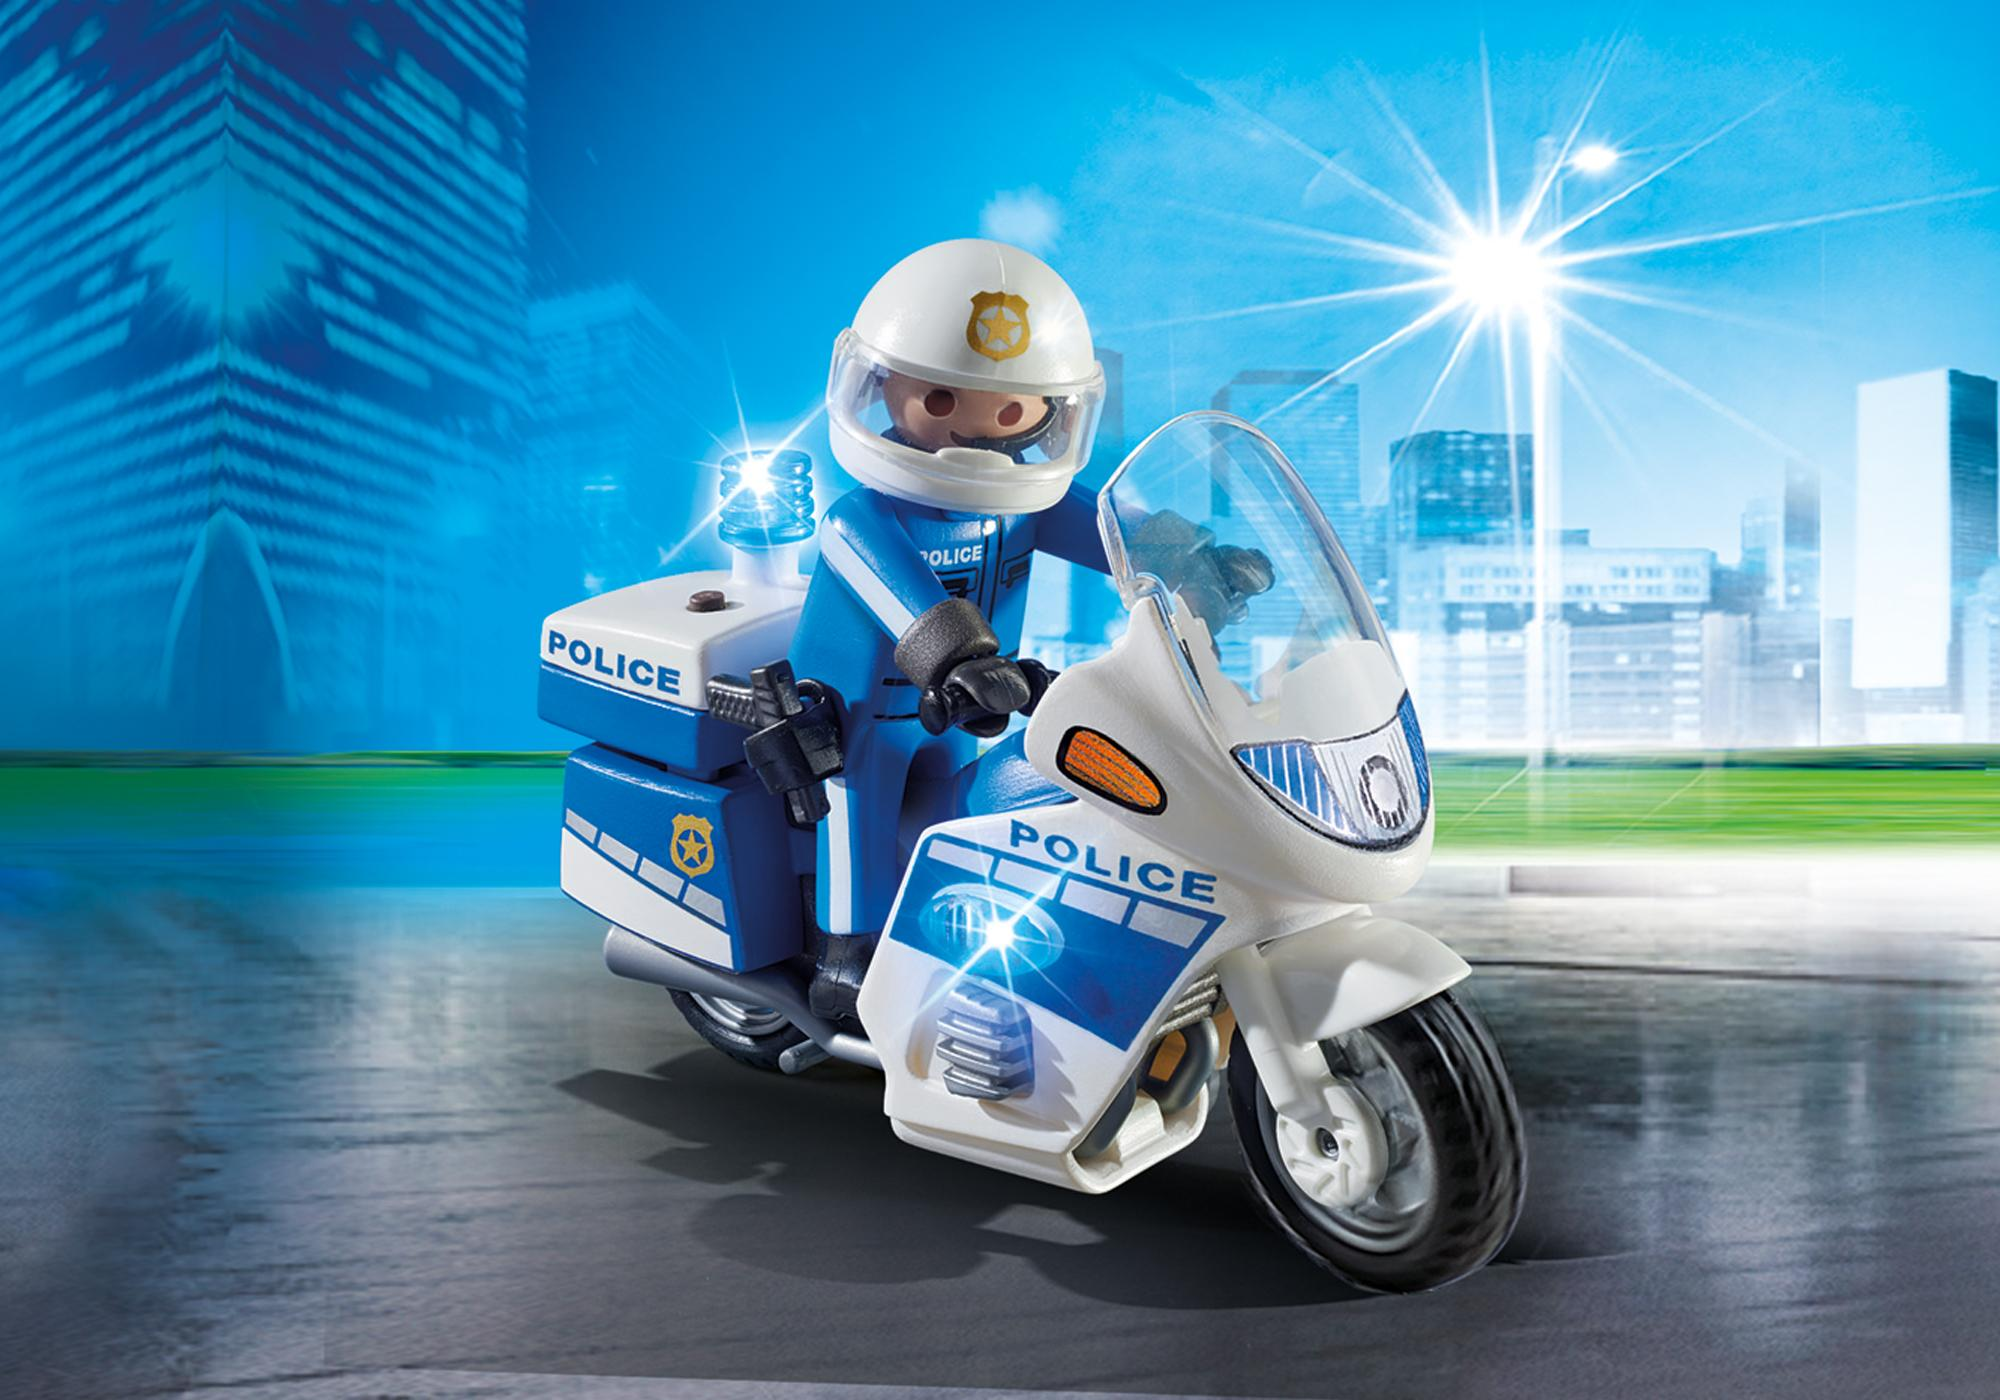 http://media.playmobil.com/i/playmobil/6923_product_detail/Poliscykel med LED-ljus